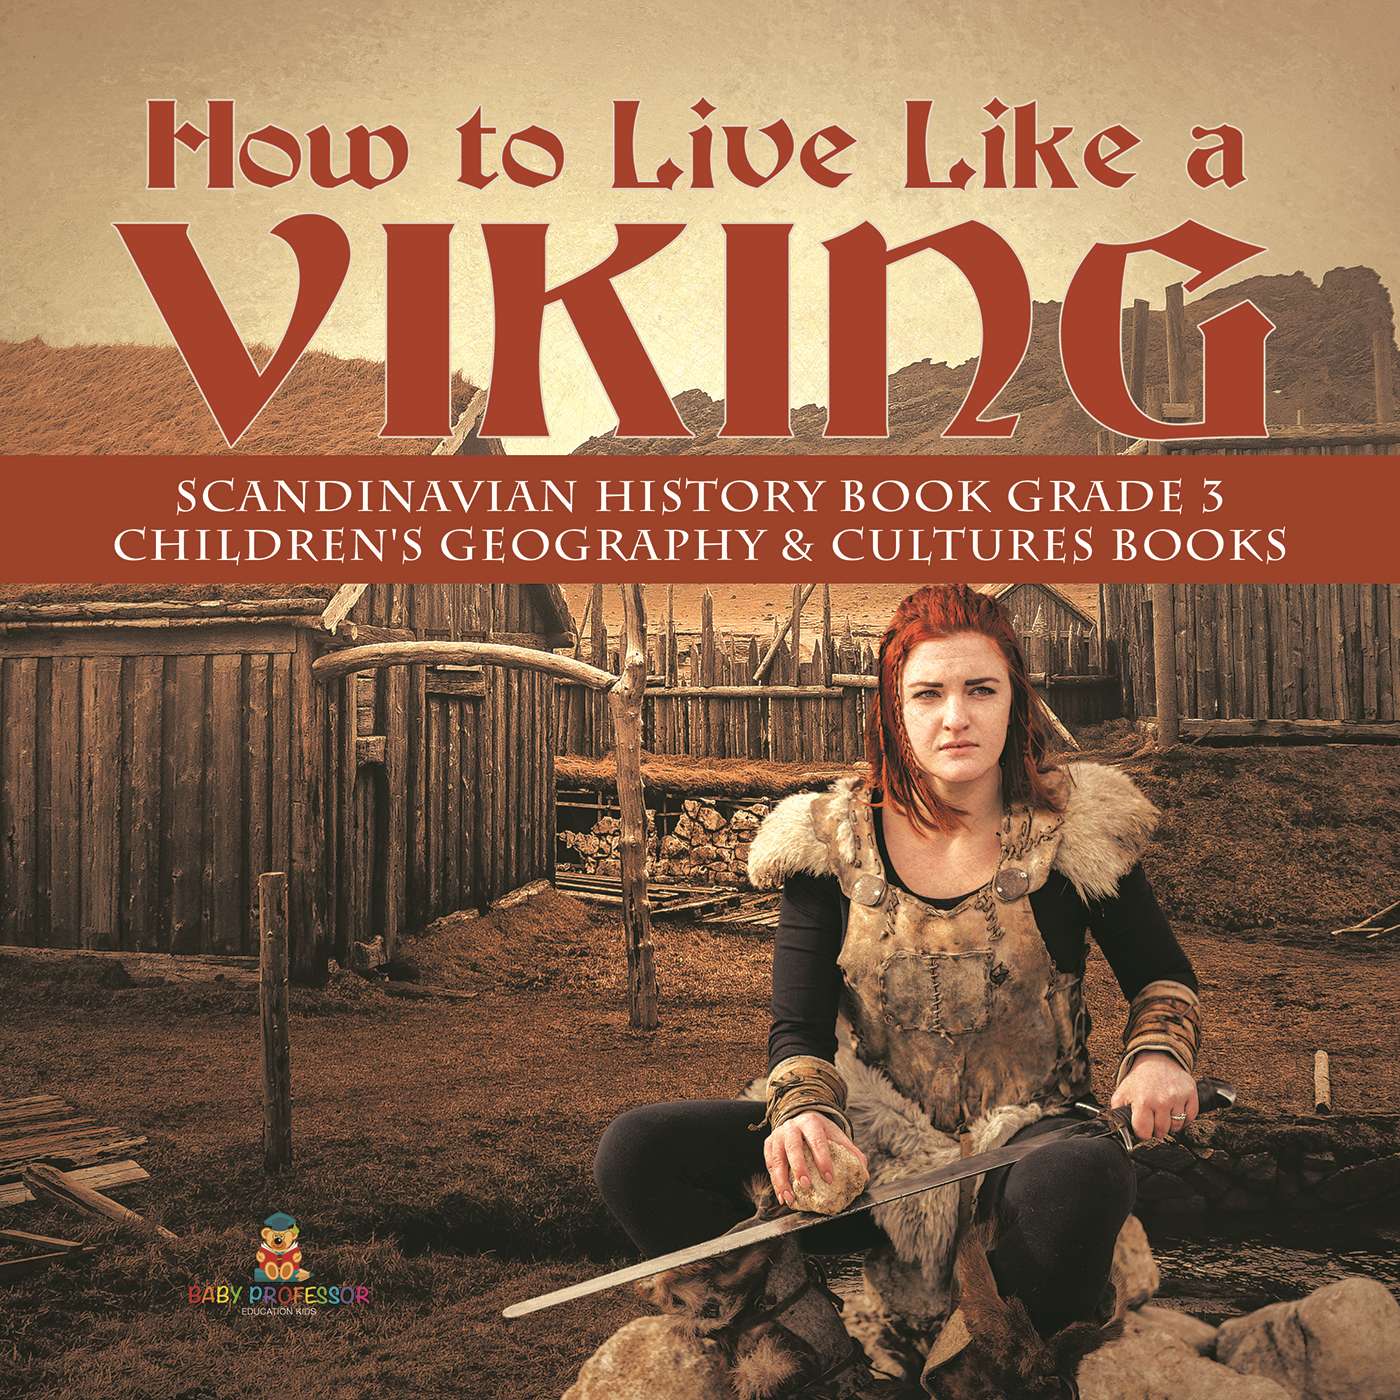 How to Live Like a Viking | Scandinavian History Book Grade 3 | Children's Geography & Cultures Books